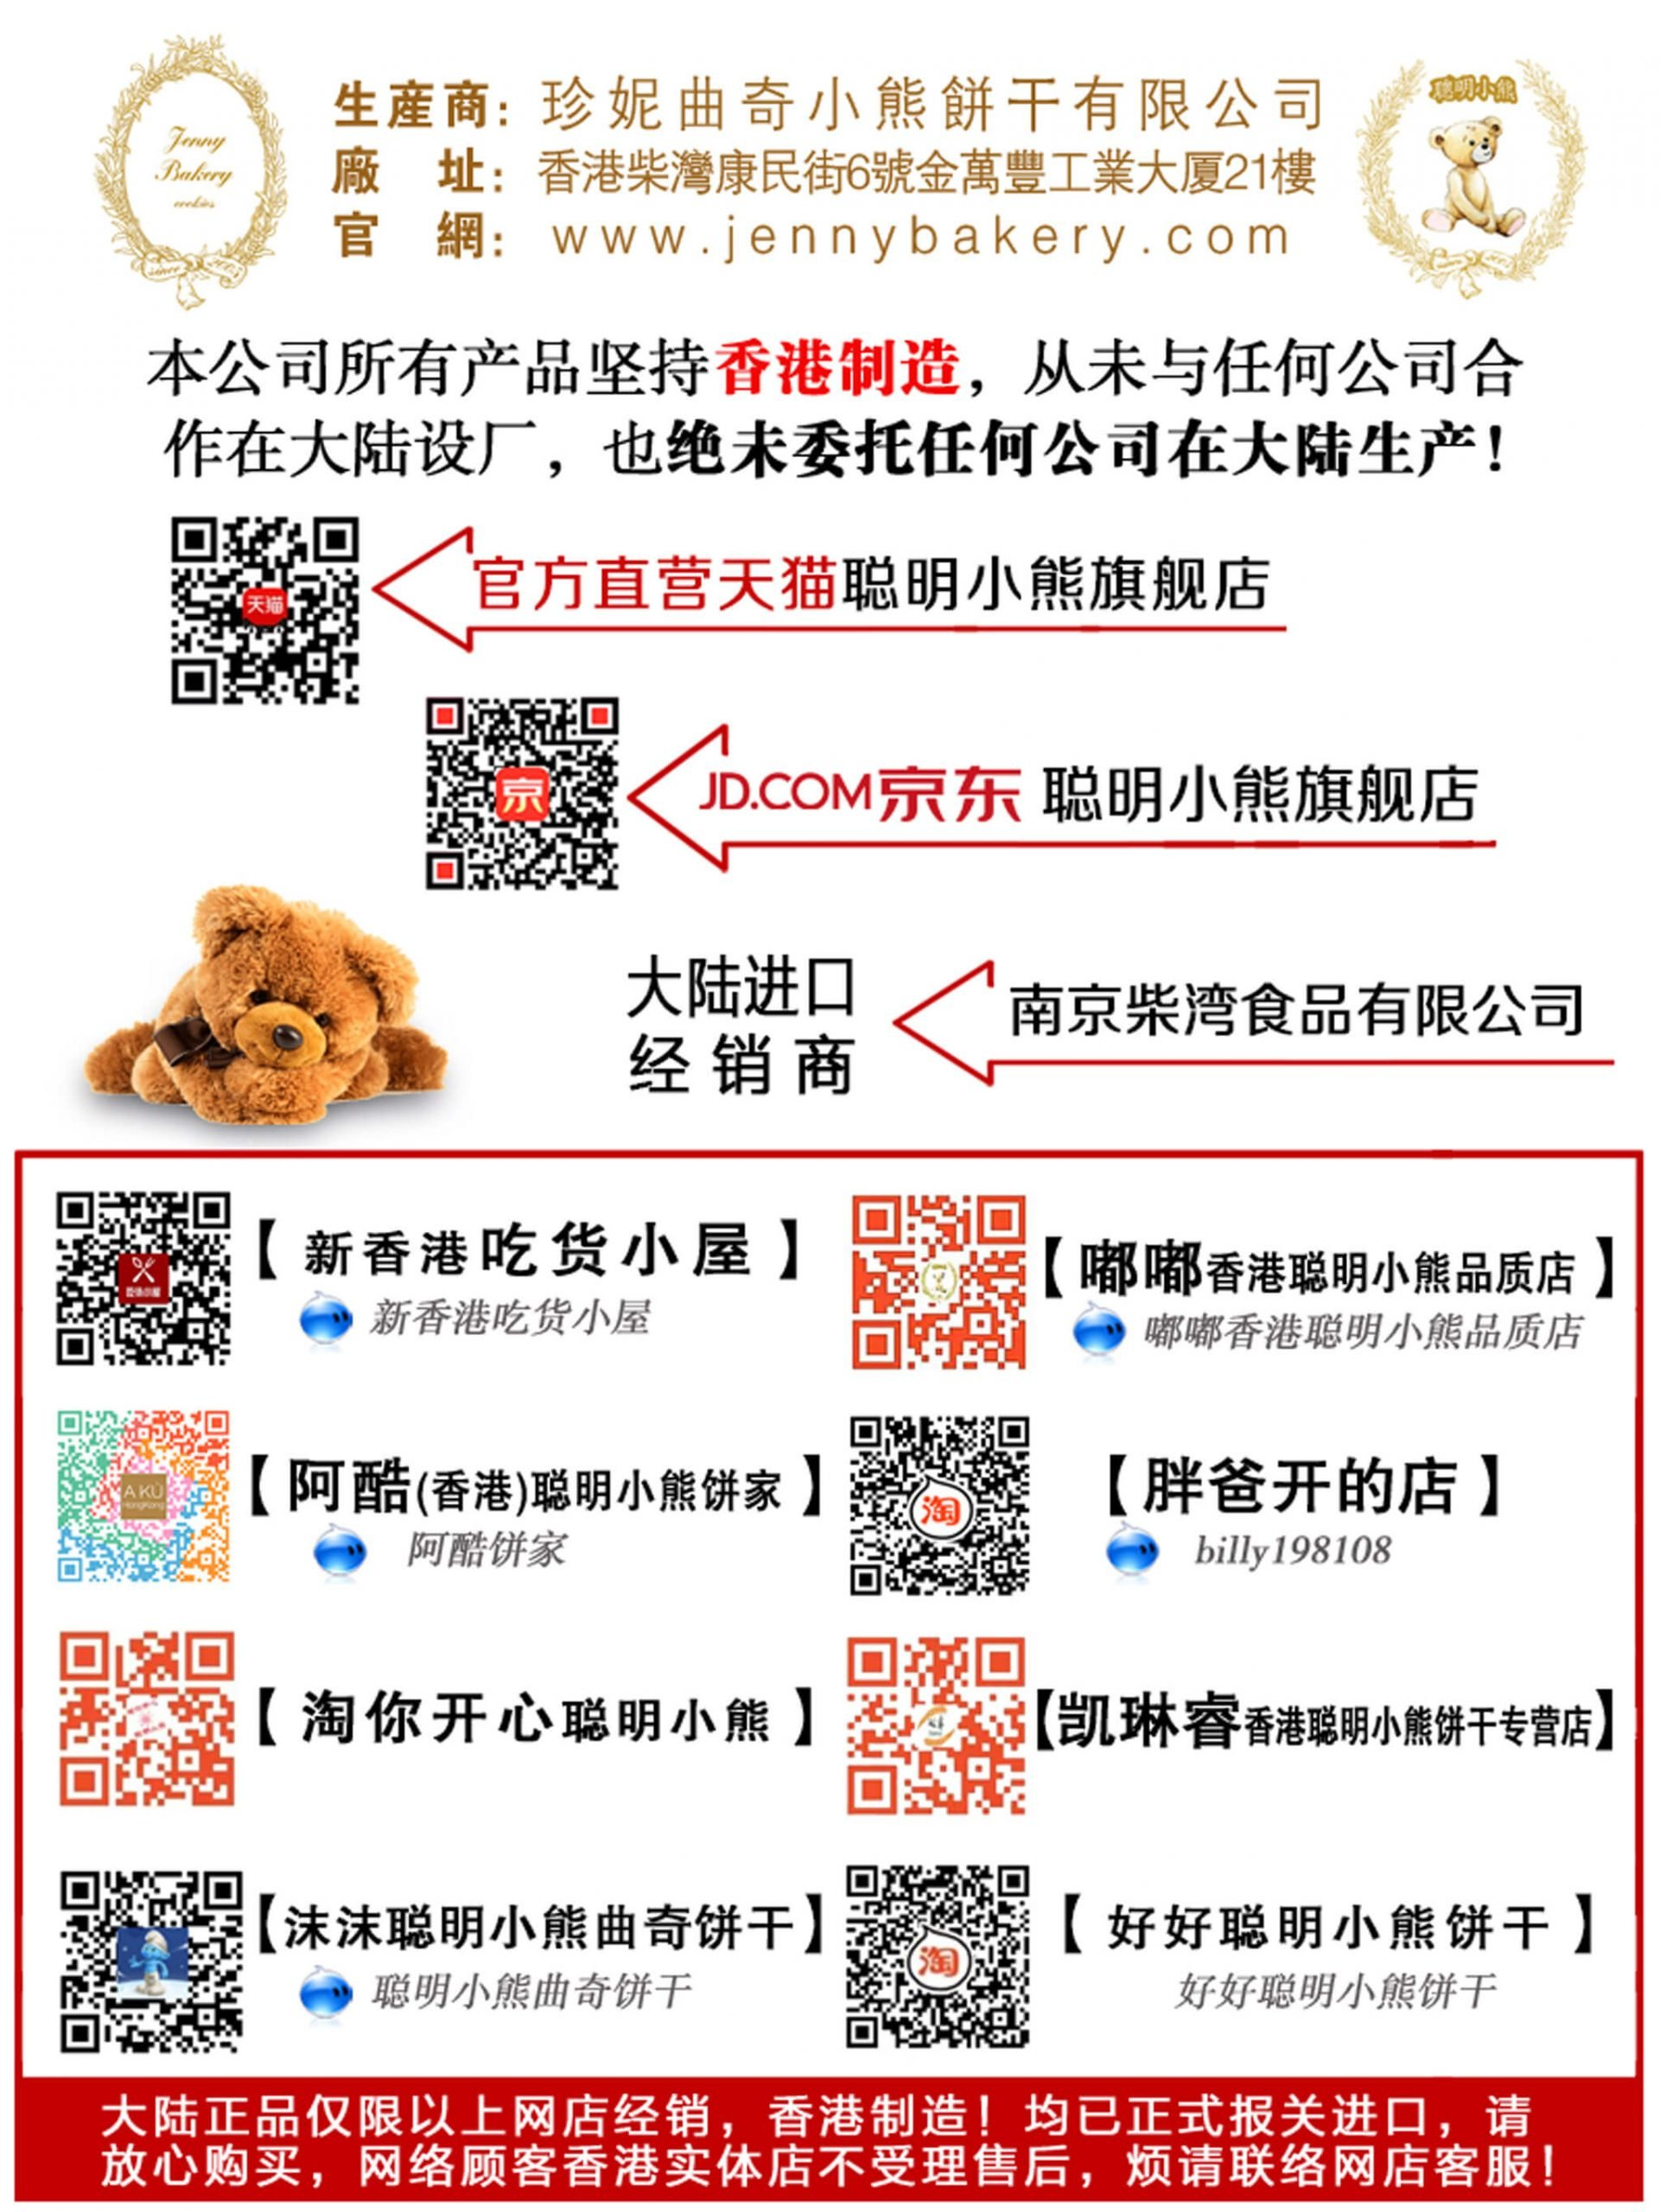 Jenny Bakery QR Code to link to official Taobao stores. Please buy only from these store